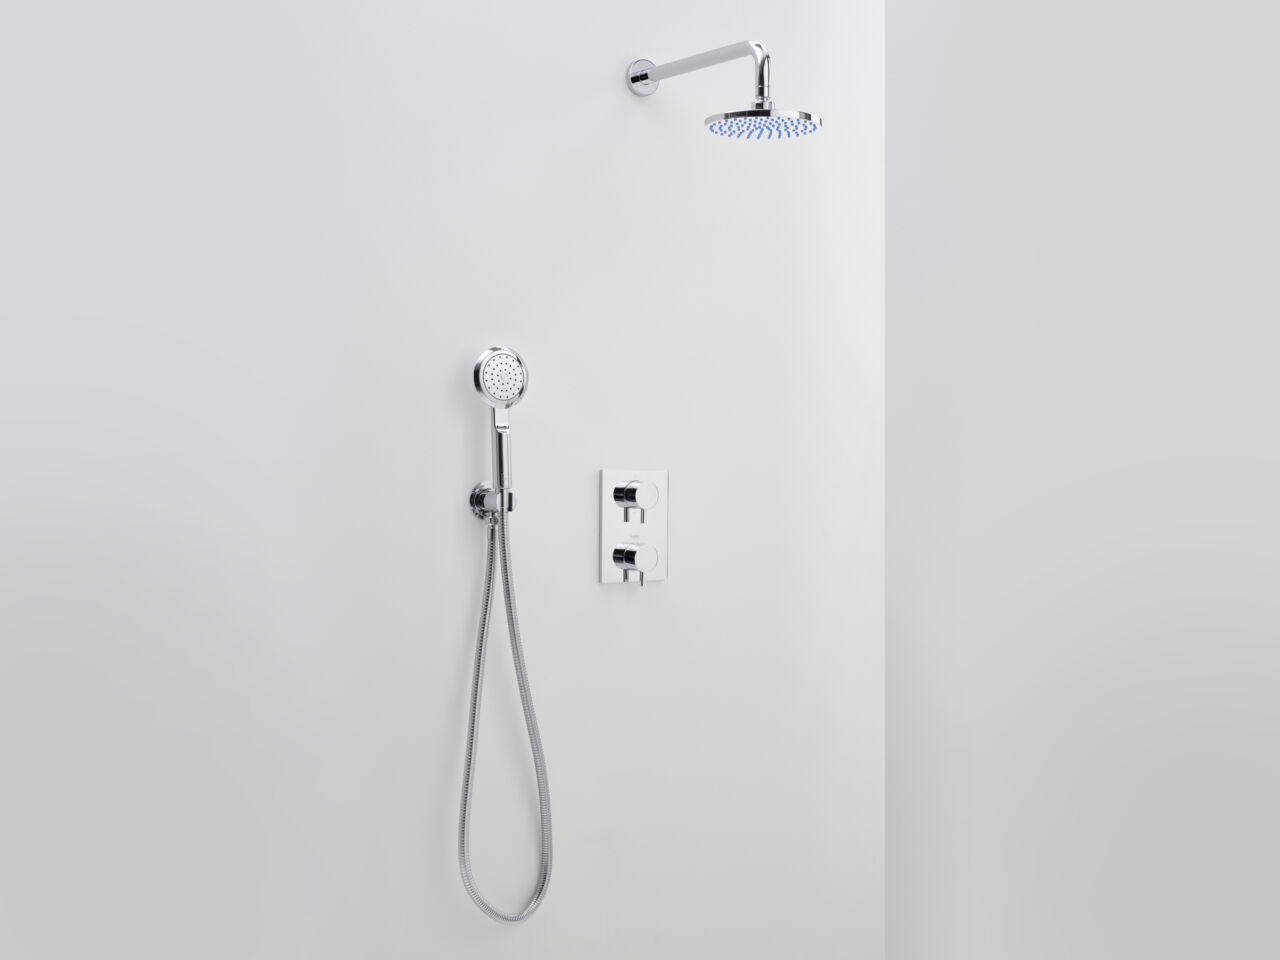 Elixir Classic Mixer with Deluge Shower Head and Hand Shower - Matki